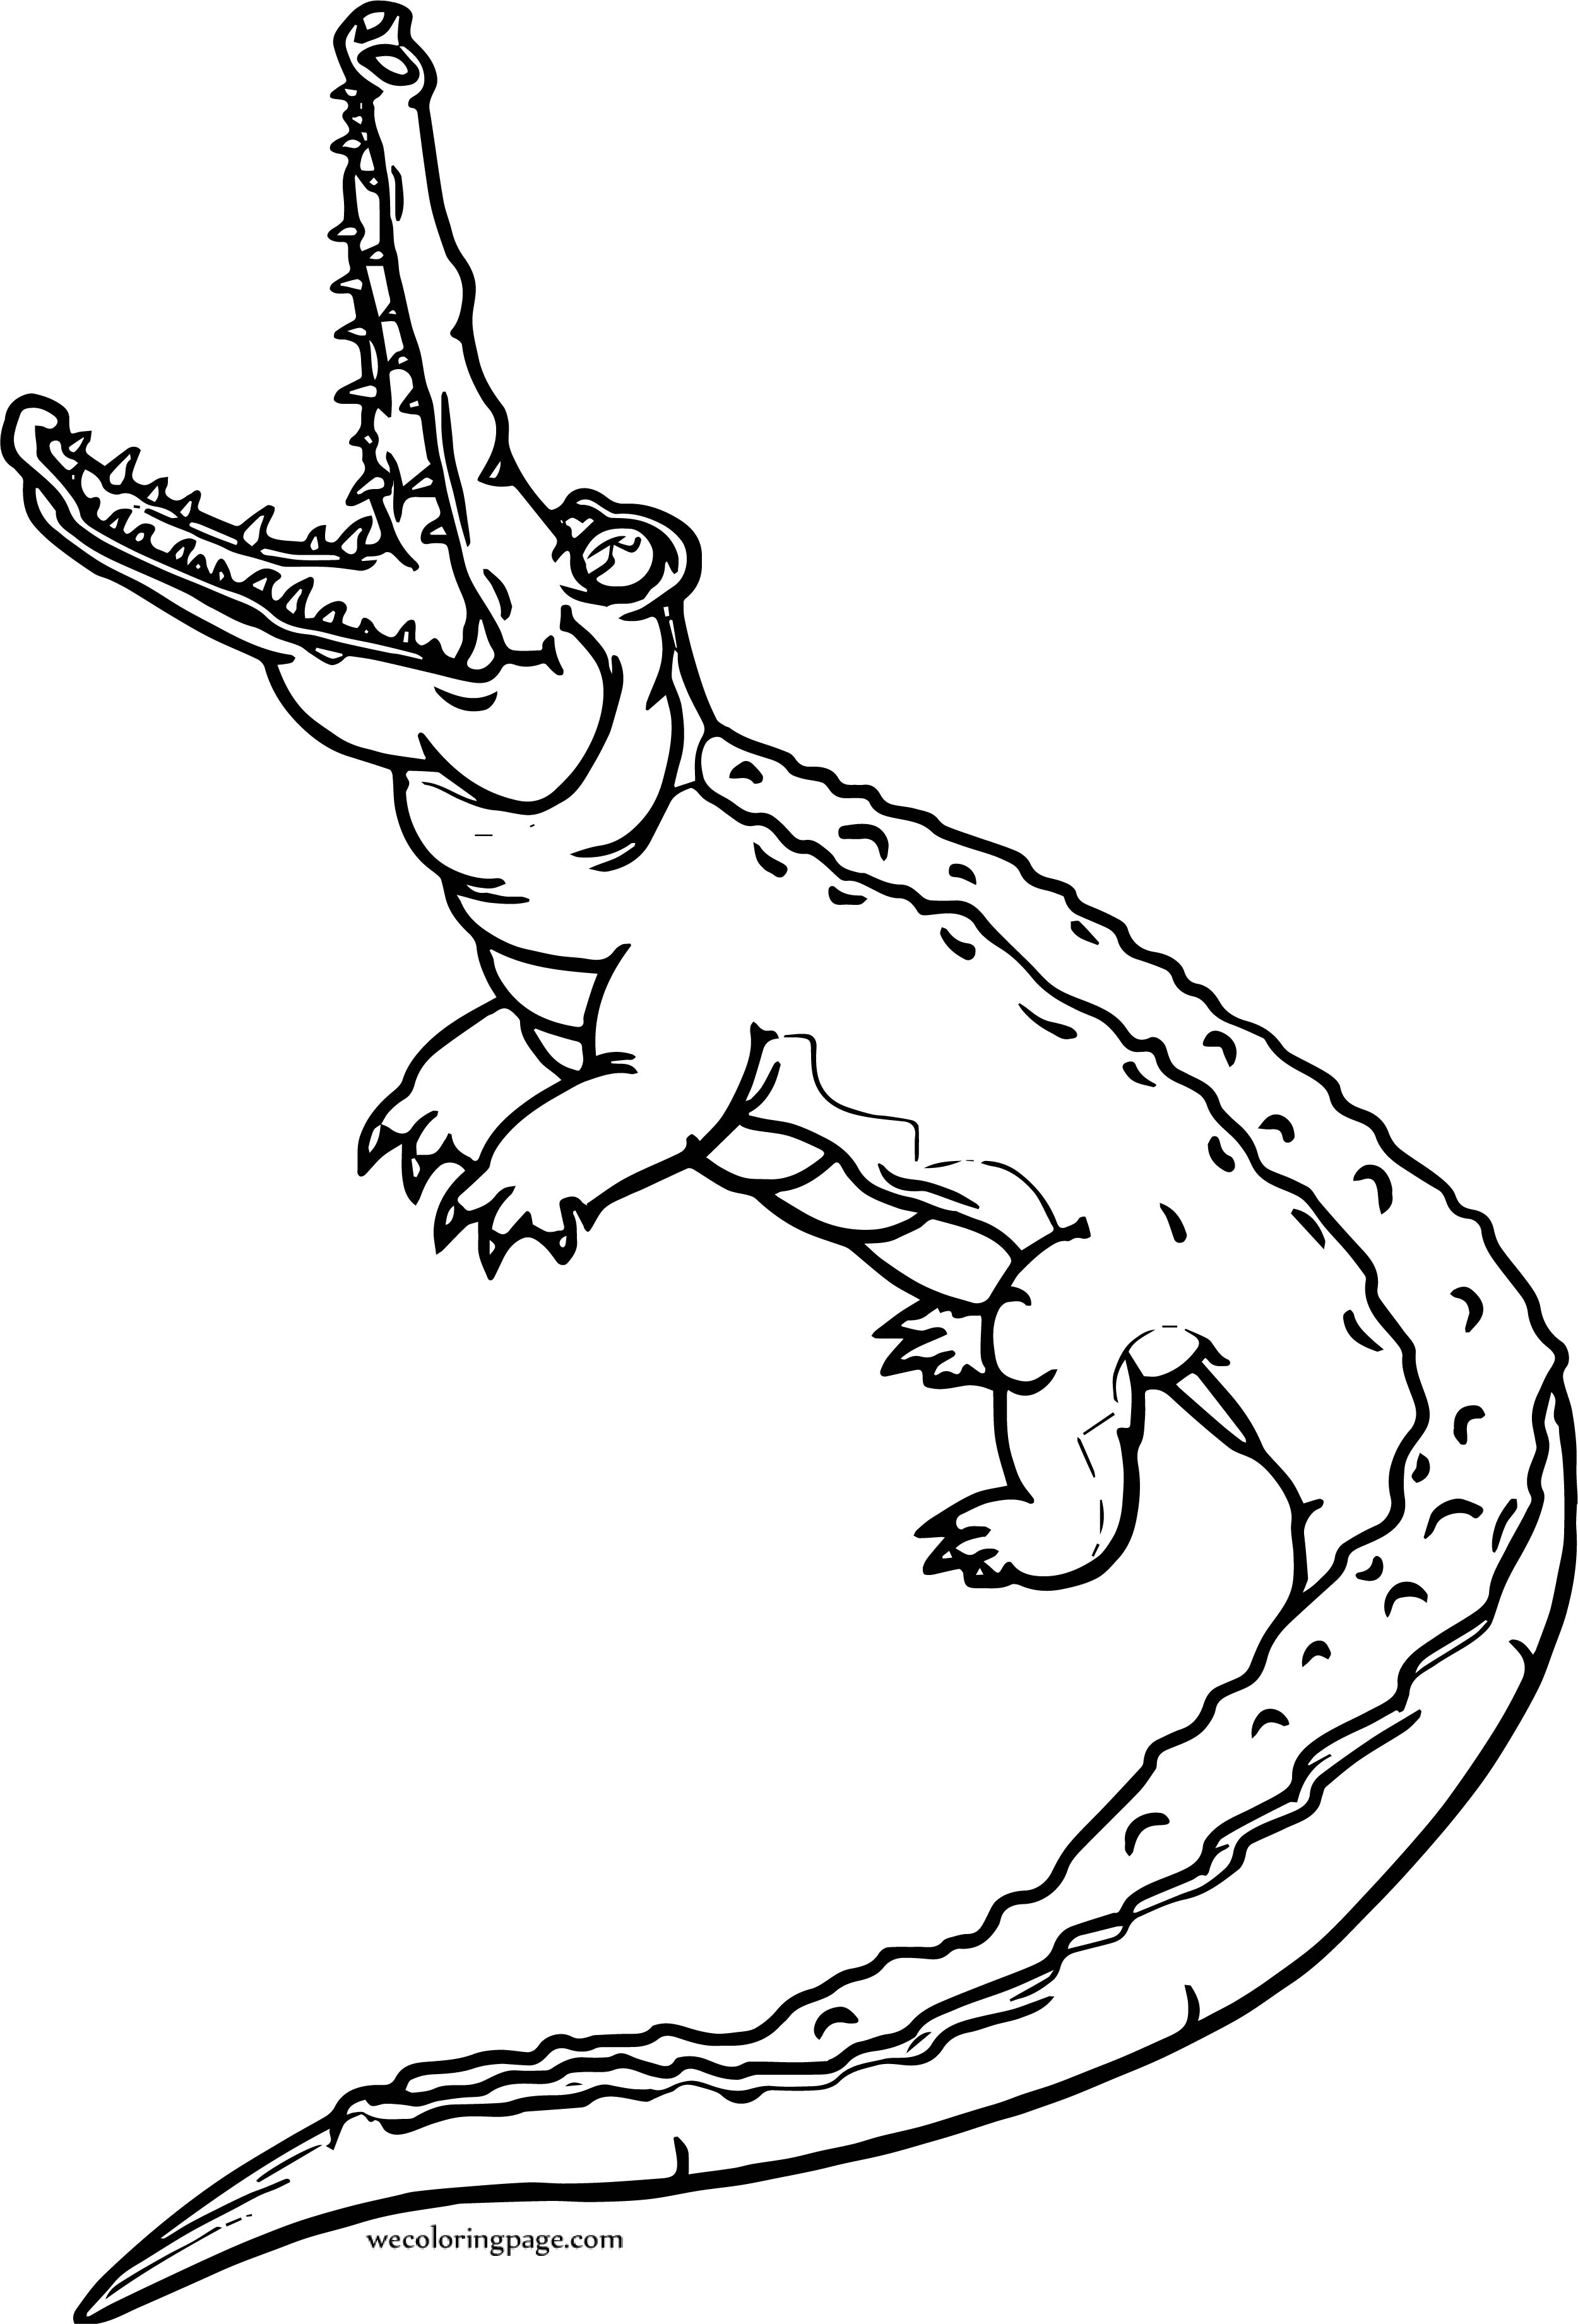 Crocodile Alligator Coloring Page | Wecoloringpage